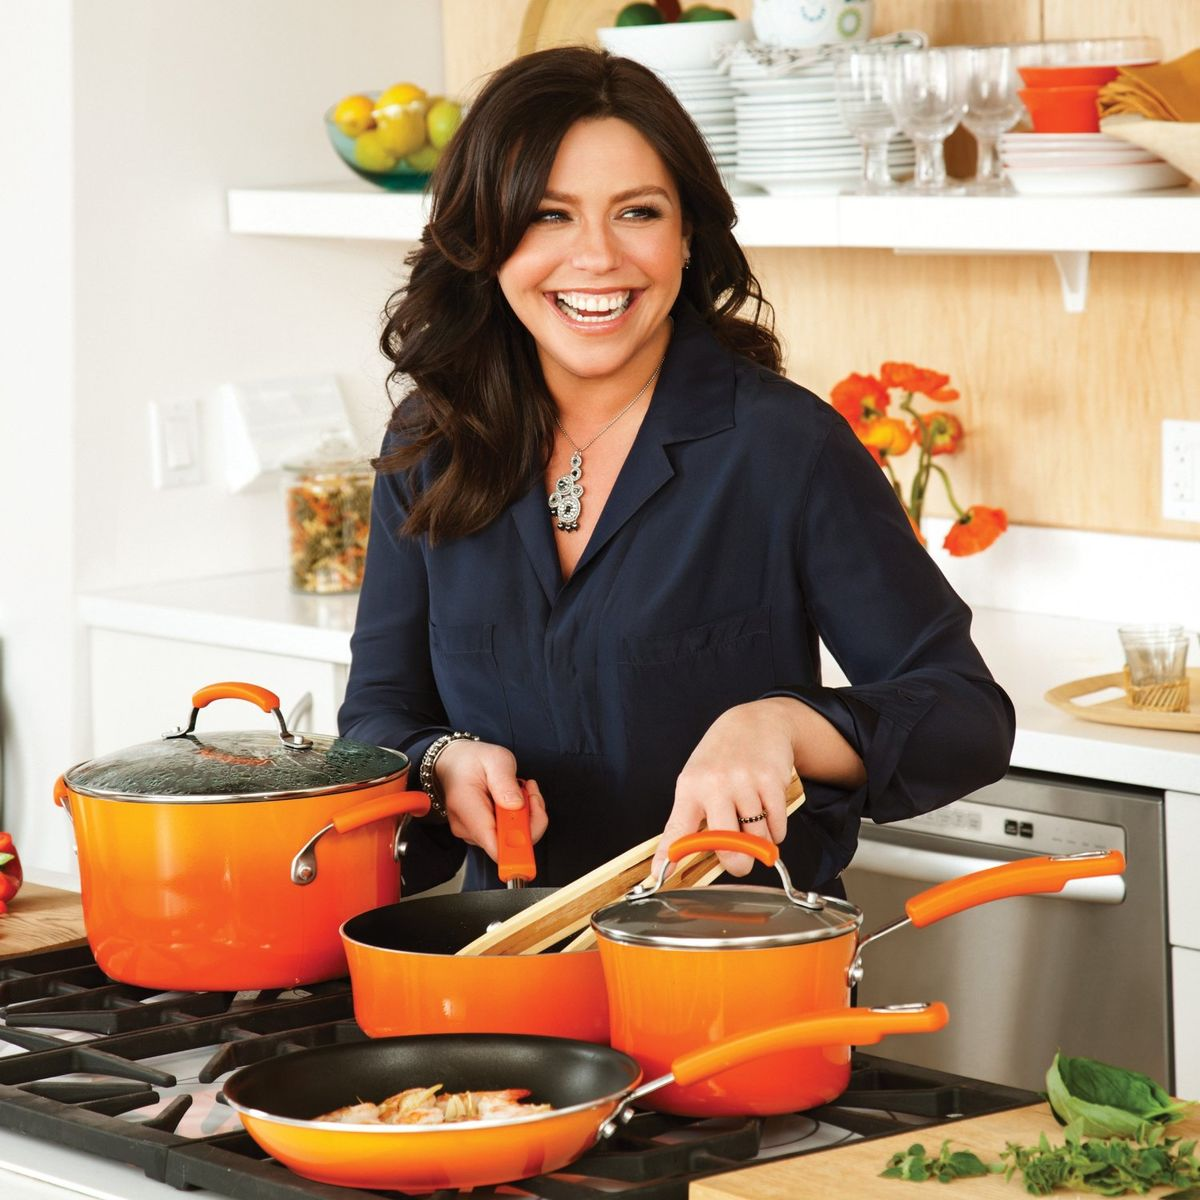 Rachael Ray Celebrity Chef Biography - thespruceeats.com